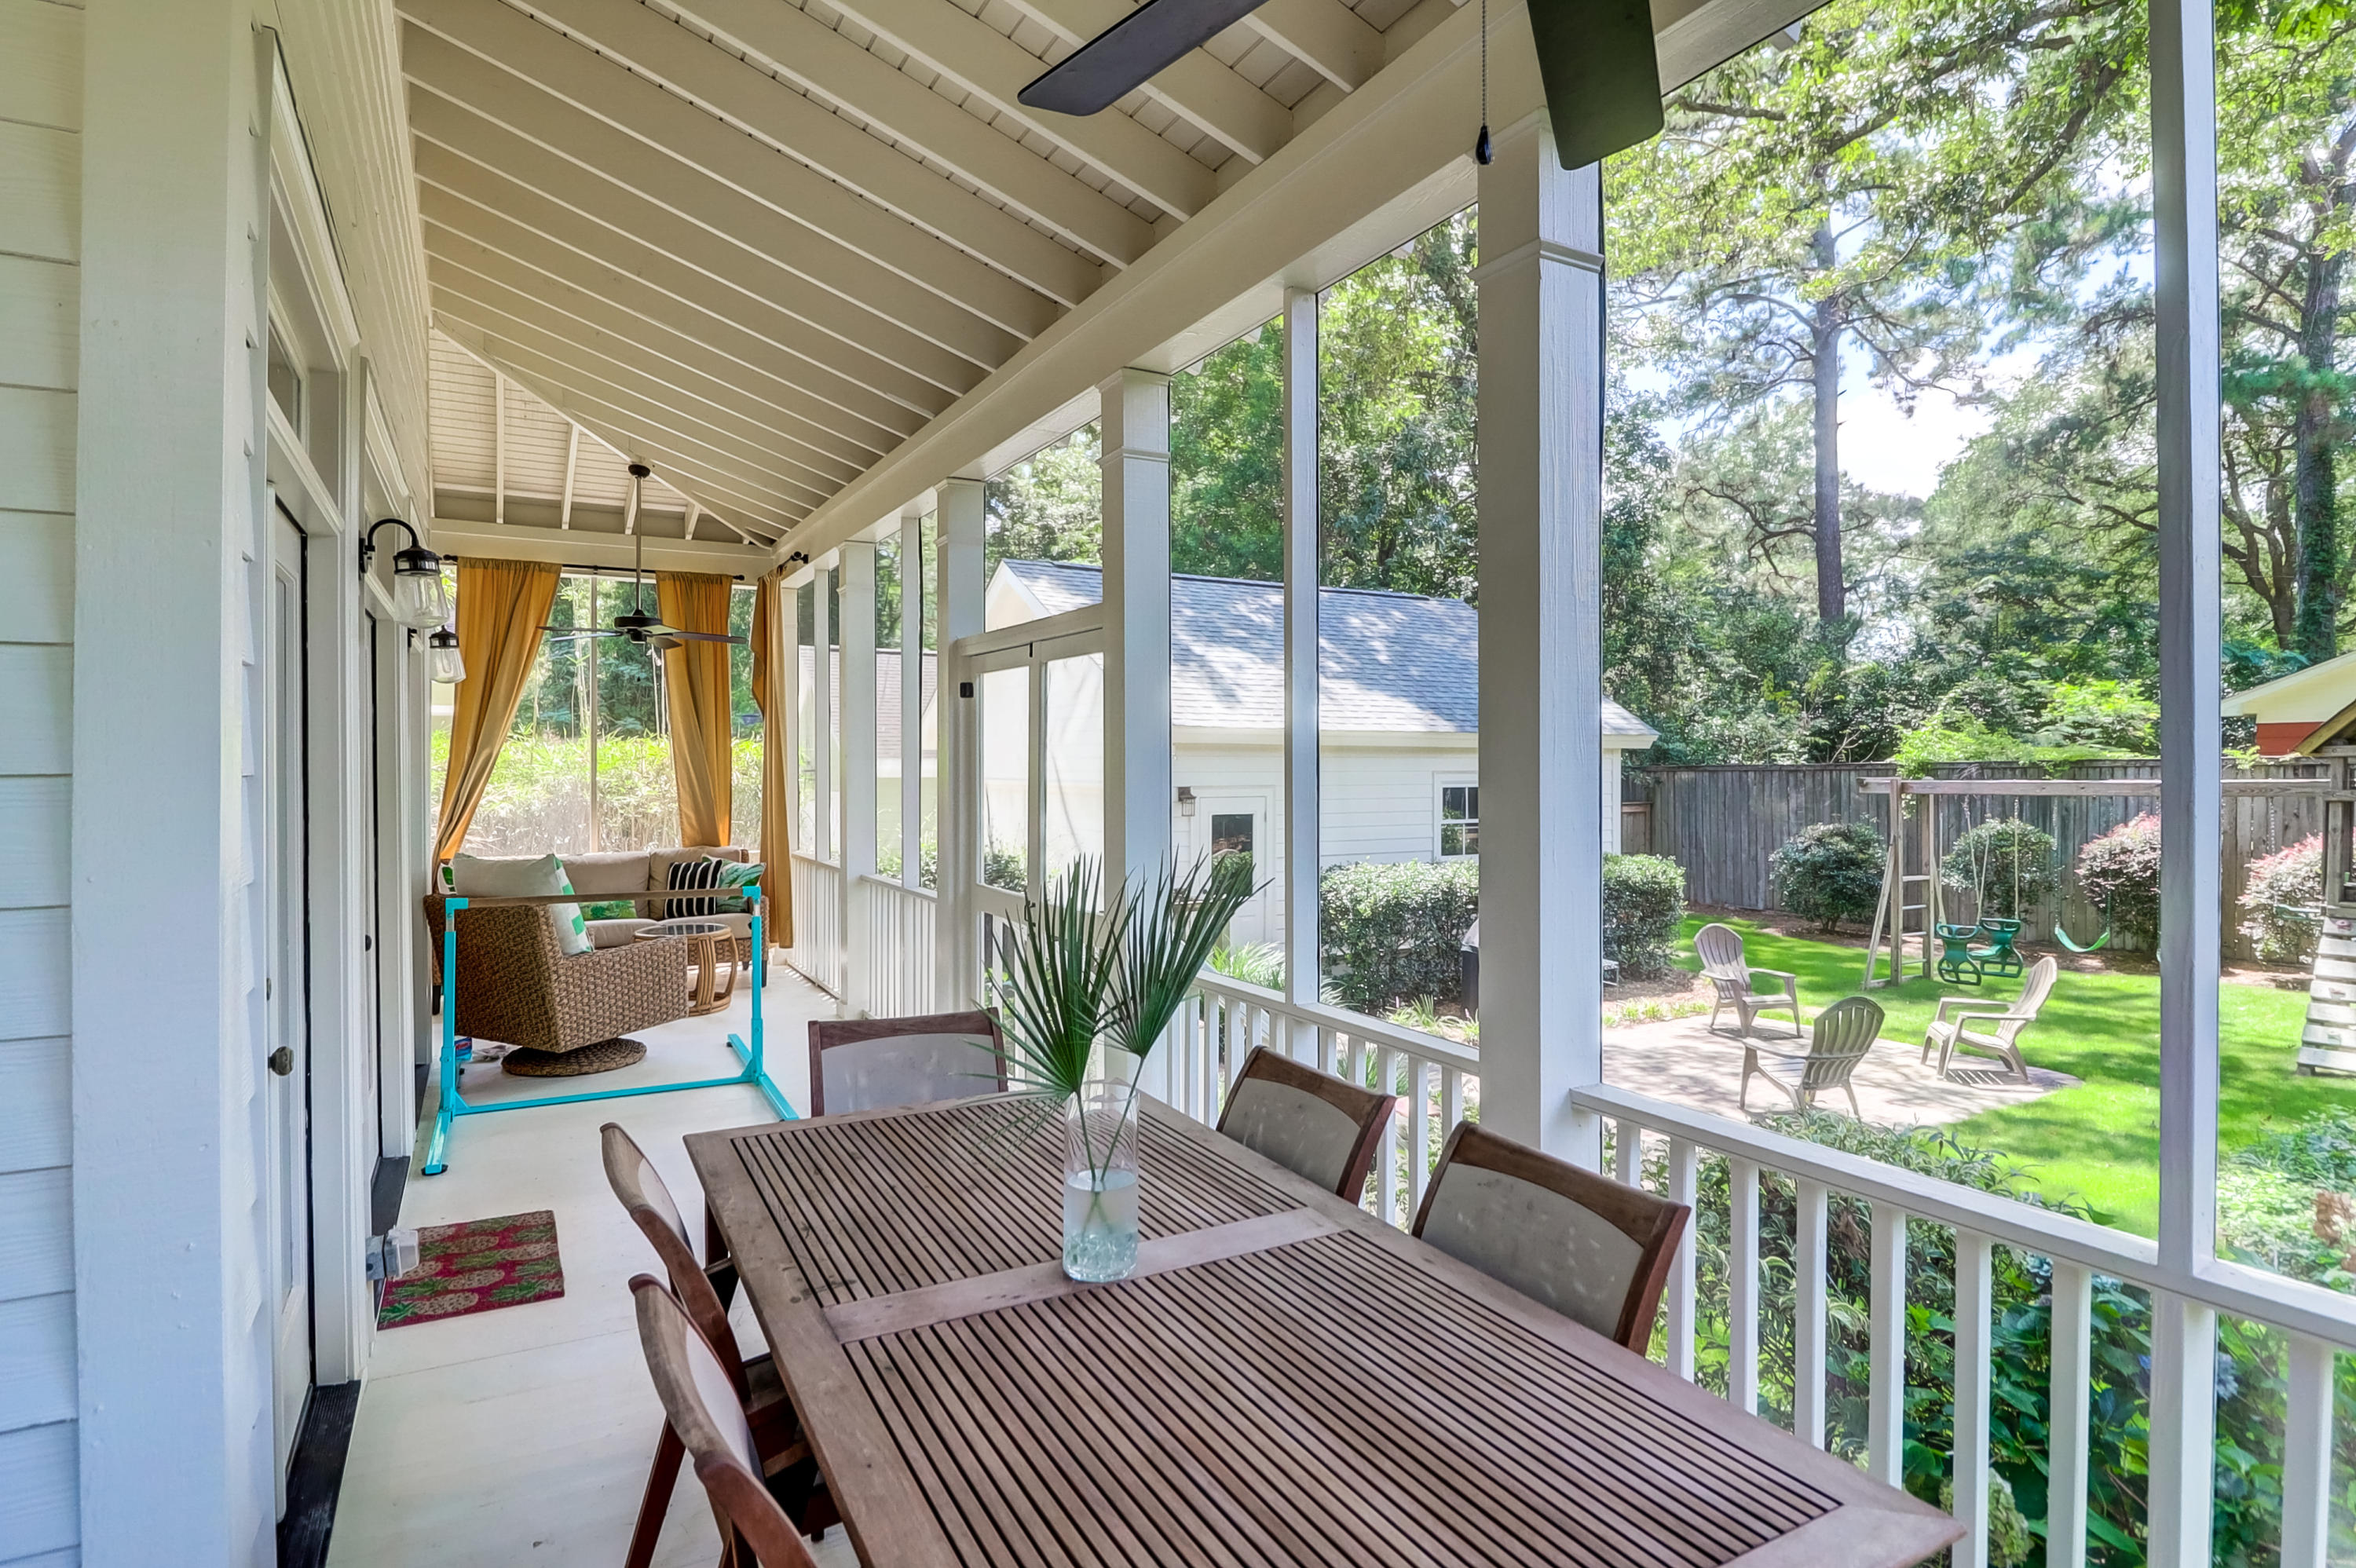 The Villages In St Johns Woods Homes For Sale - 5056 Coral Reef Dr, Johns Island, SC - 8